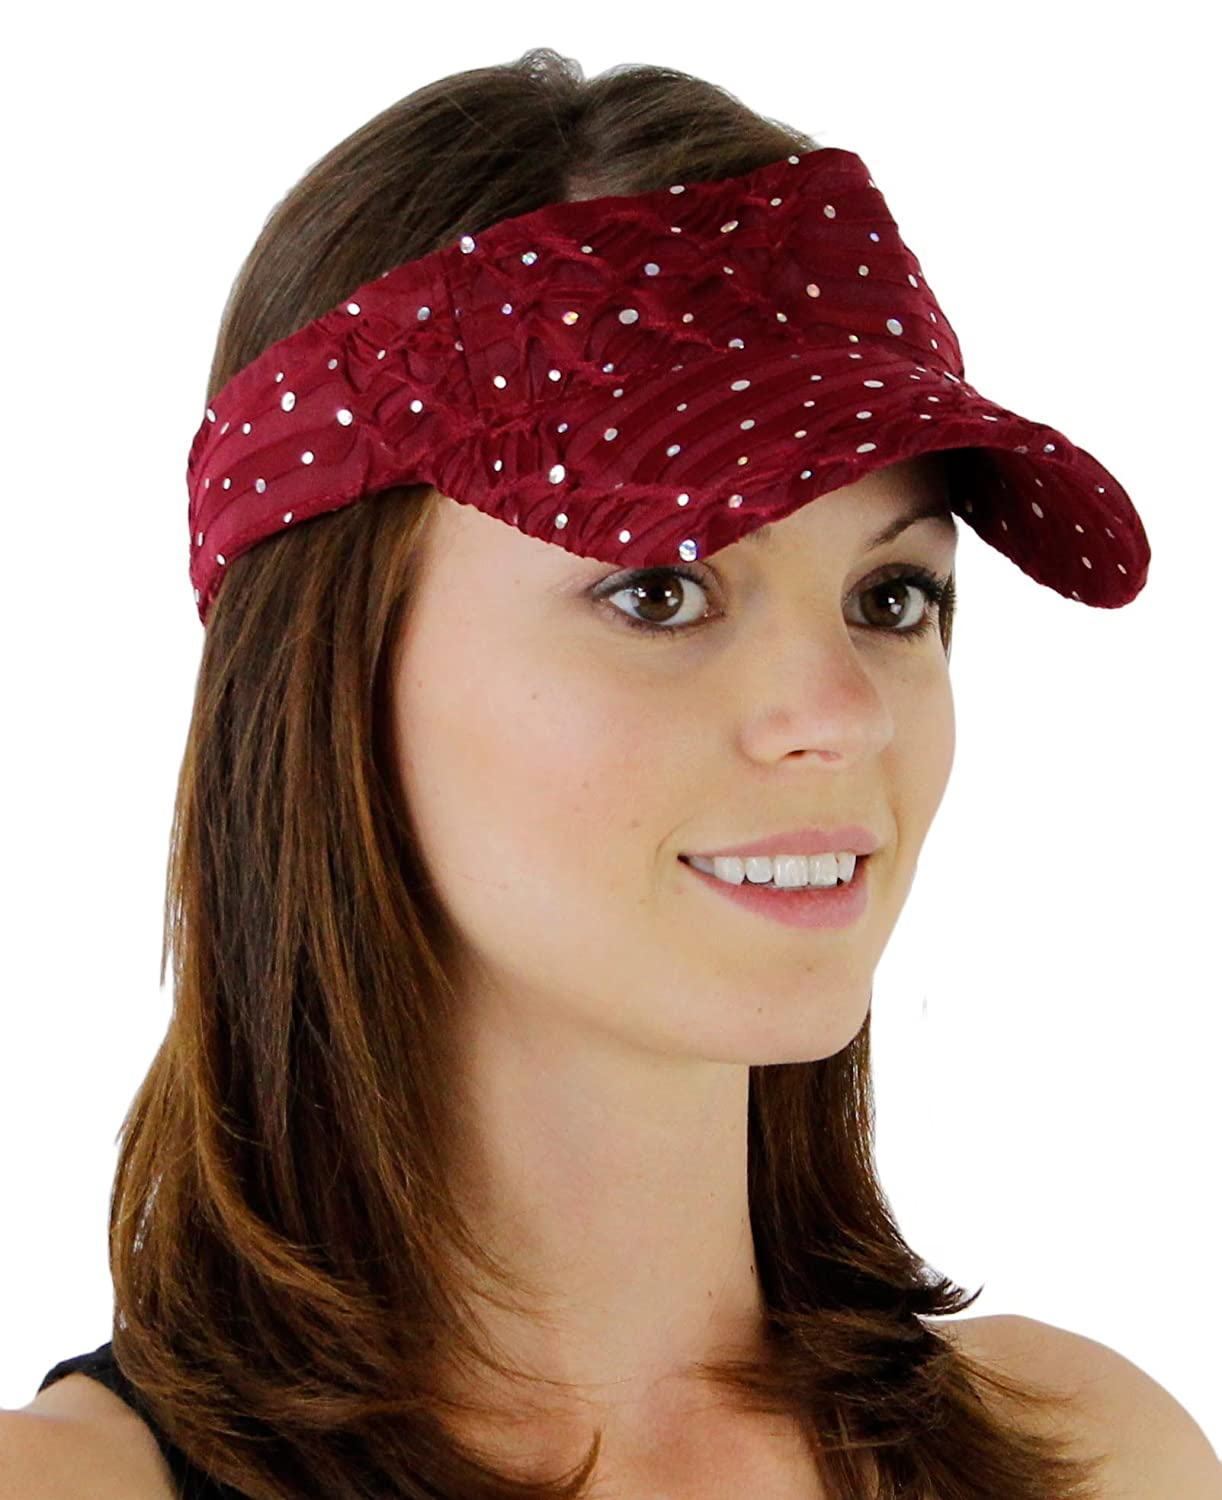 Glitter Sequin Visor with Flowers for Ladies Beige One Size Greatlookz Fashion 6HART71285:C601